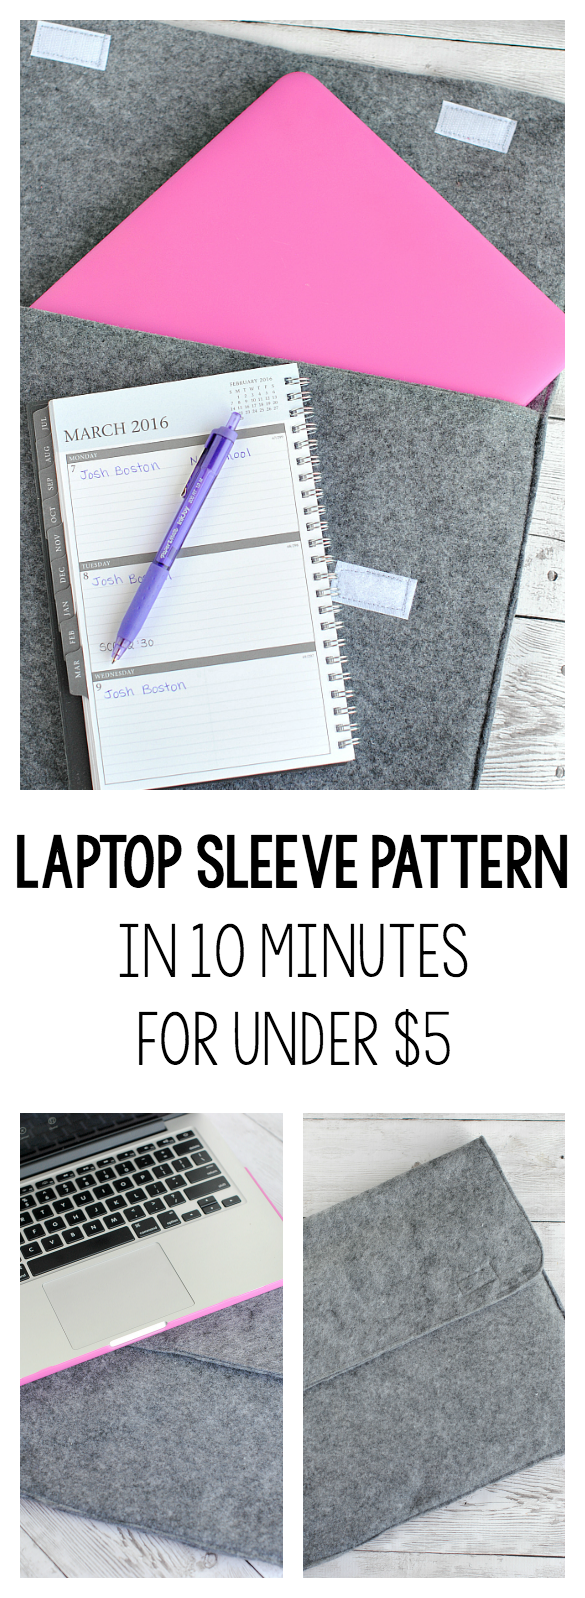 DIY Laptop Sleeve Tutorial-Make it in Ten Minutes! This great sewing pattern is super easy to sew and costs less than $5 to make! A great beginner sewing project. #sew #easypatterns #freepatterns